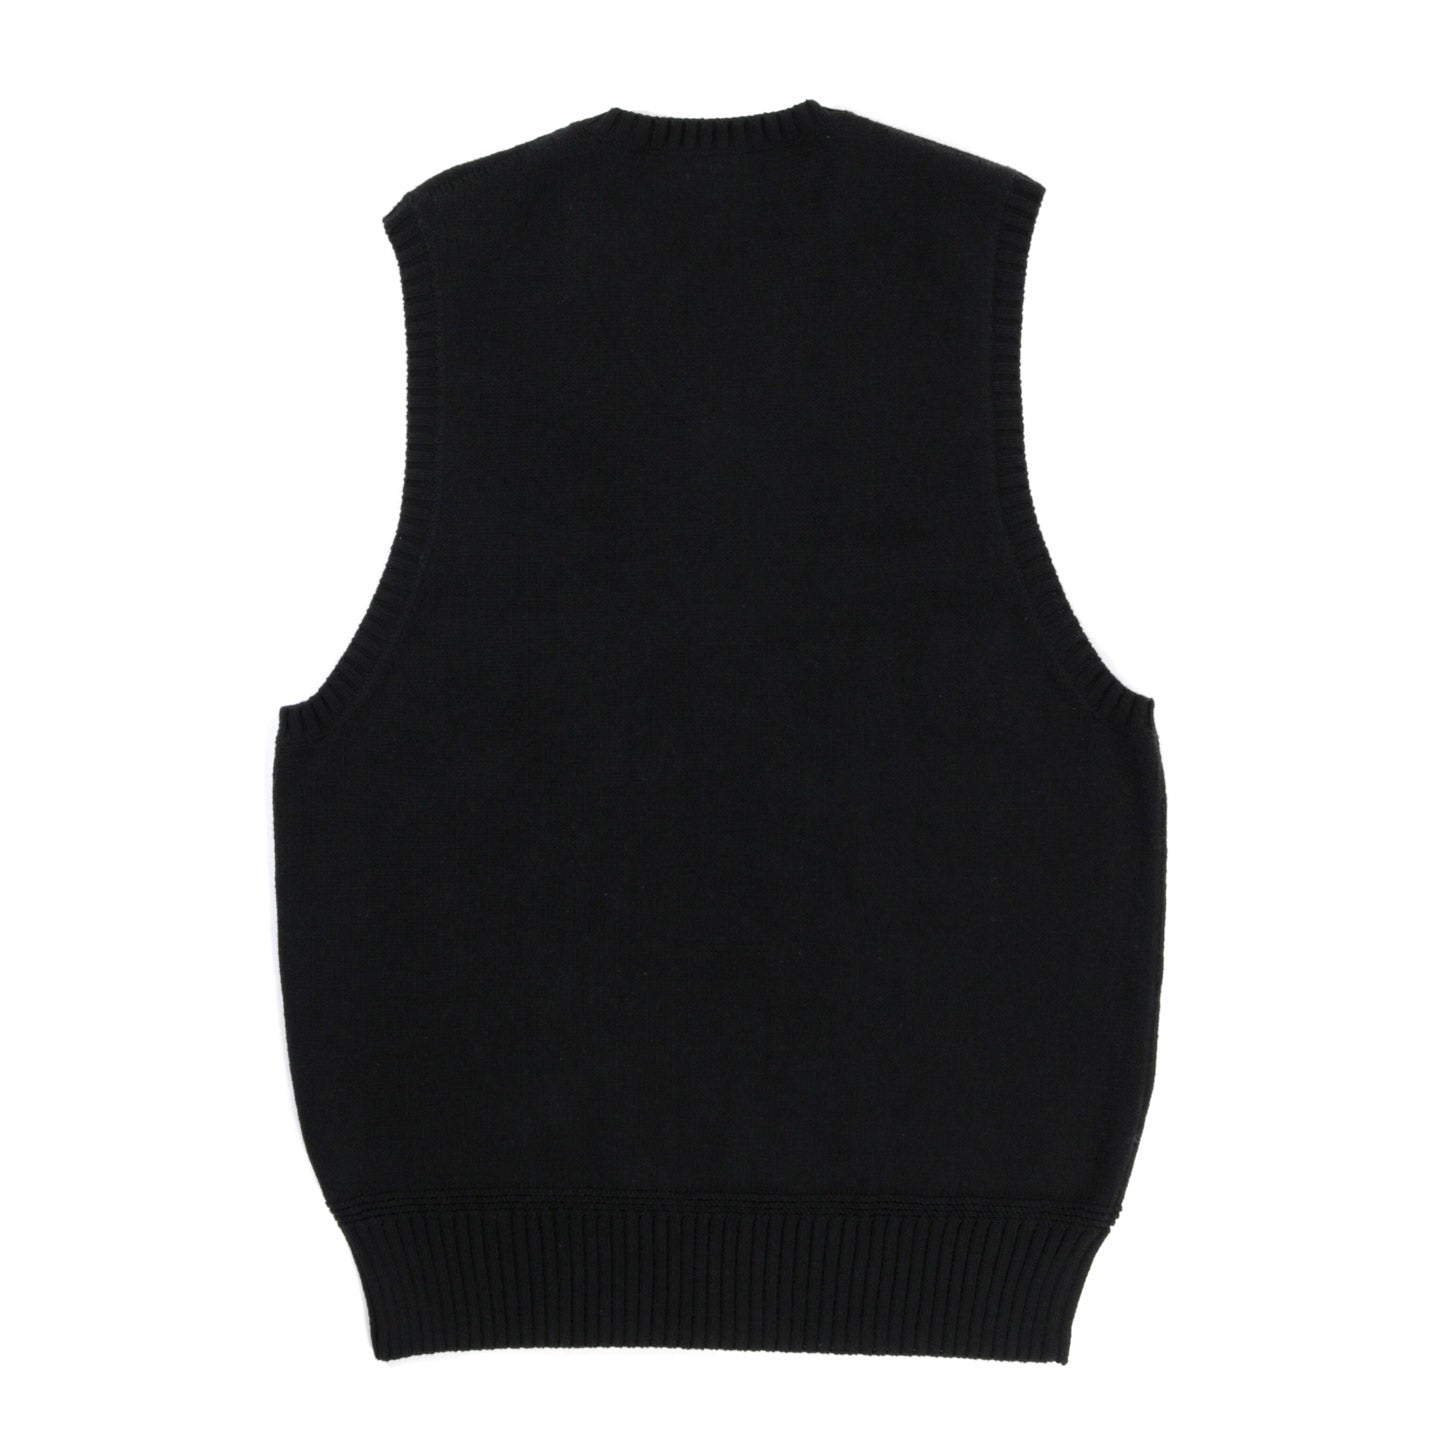 S.K. MANOR HILL FANNY PACK GLEN CHECK